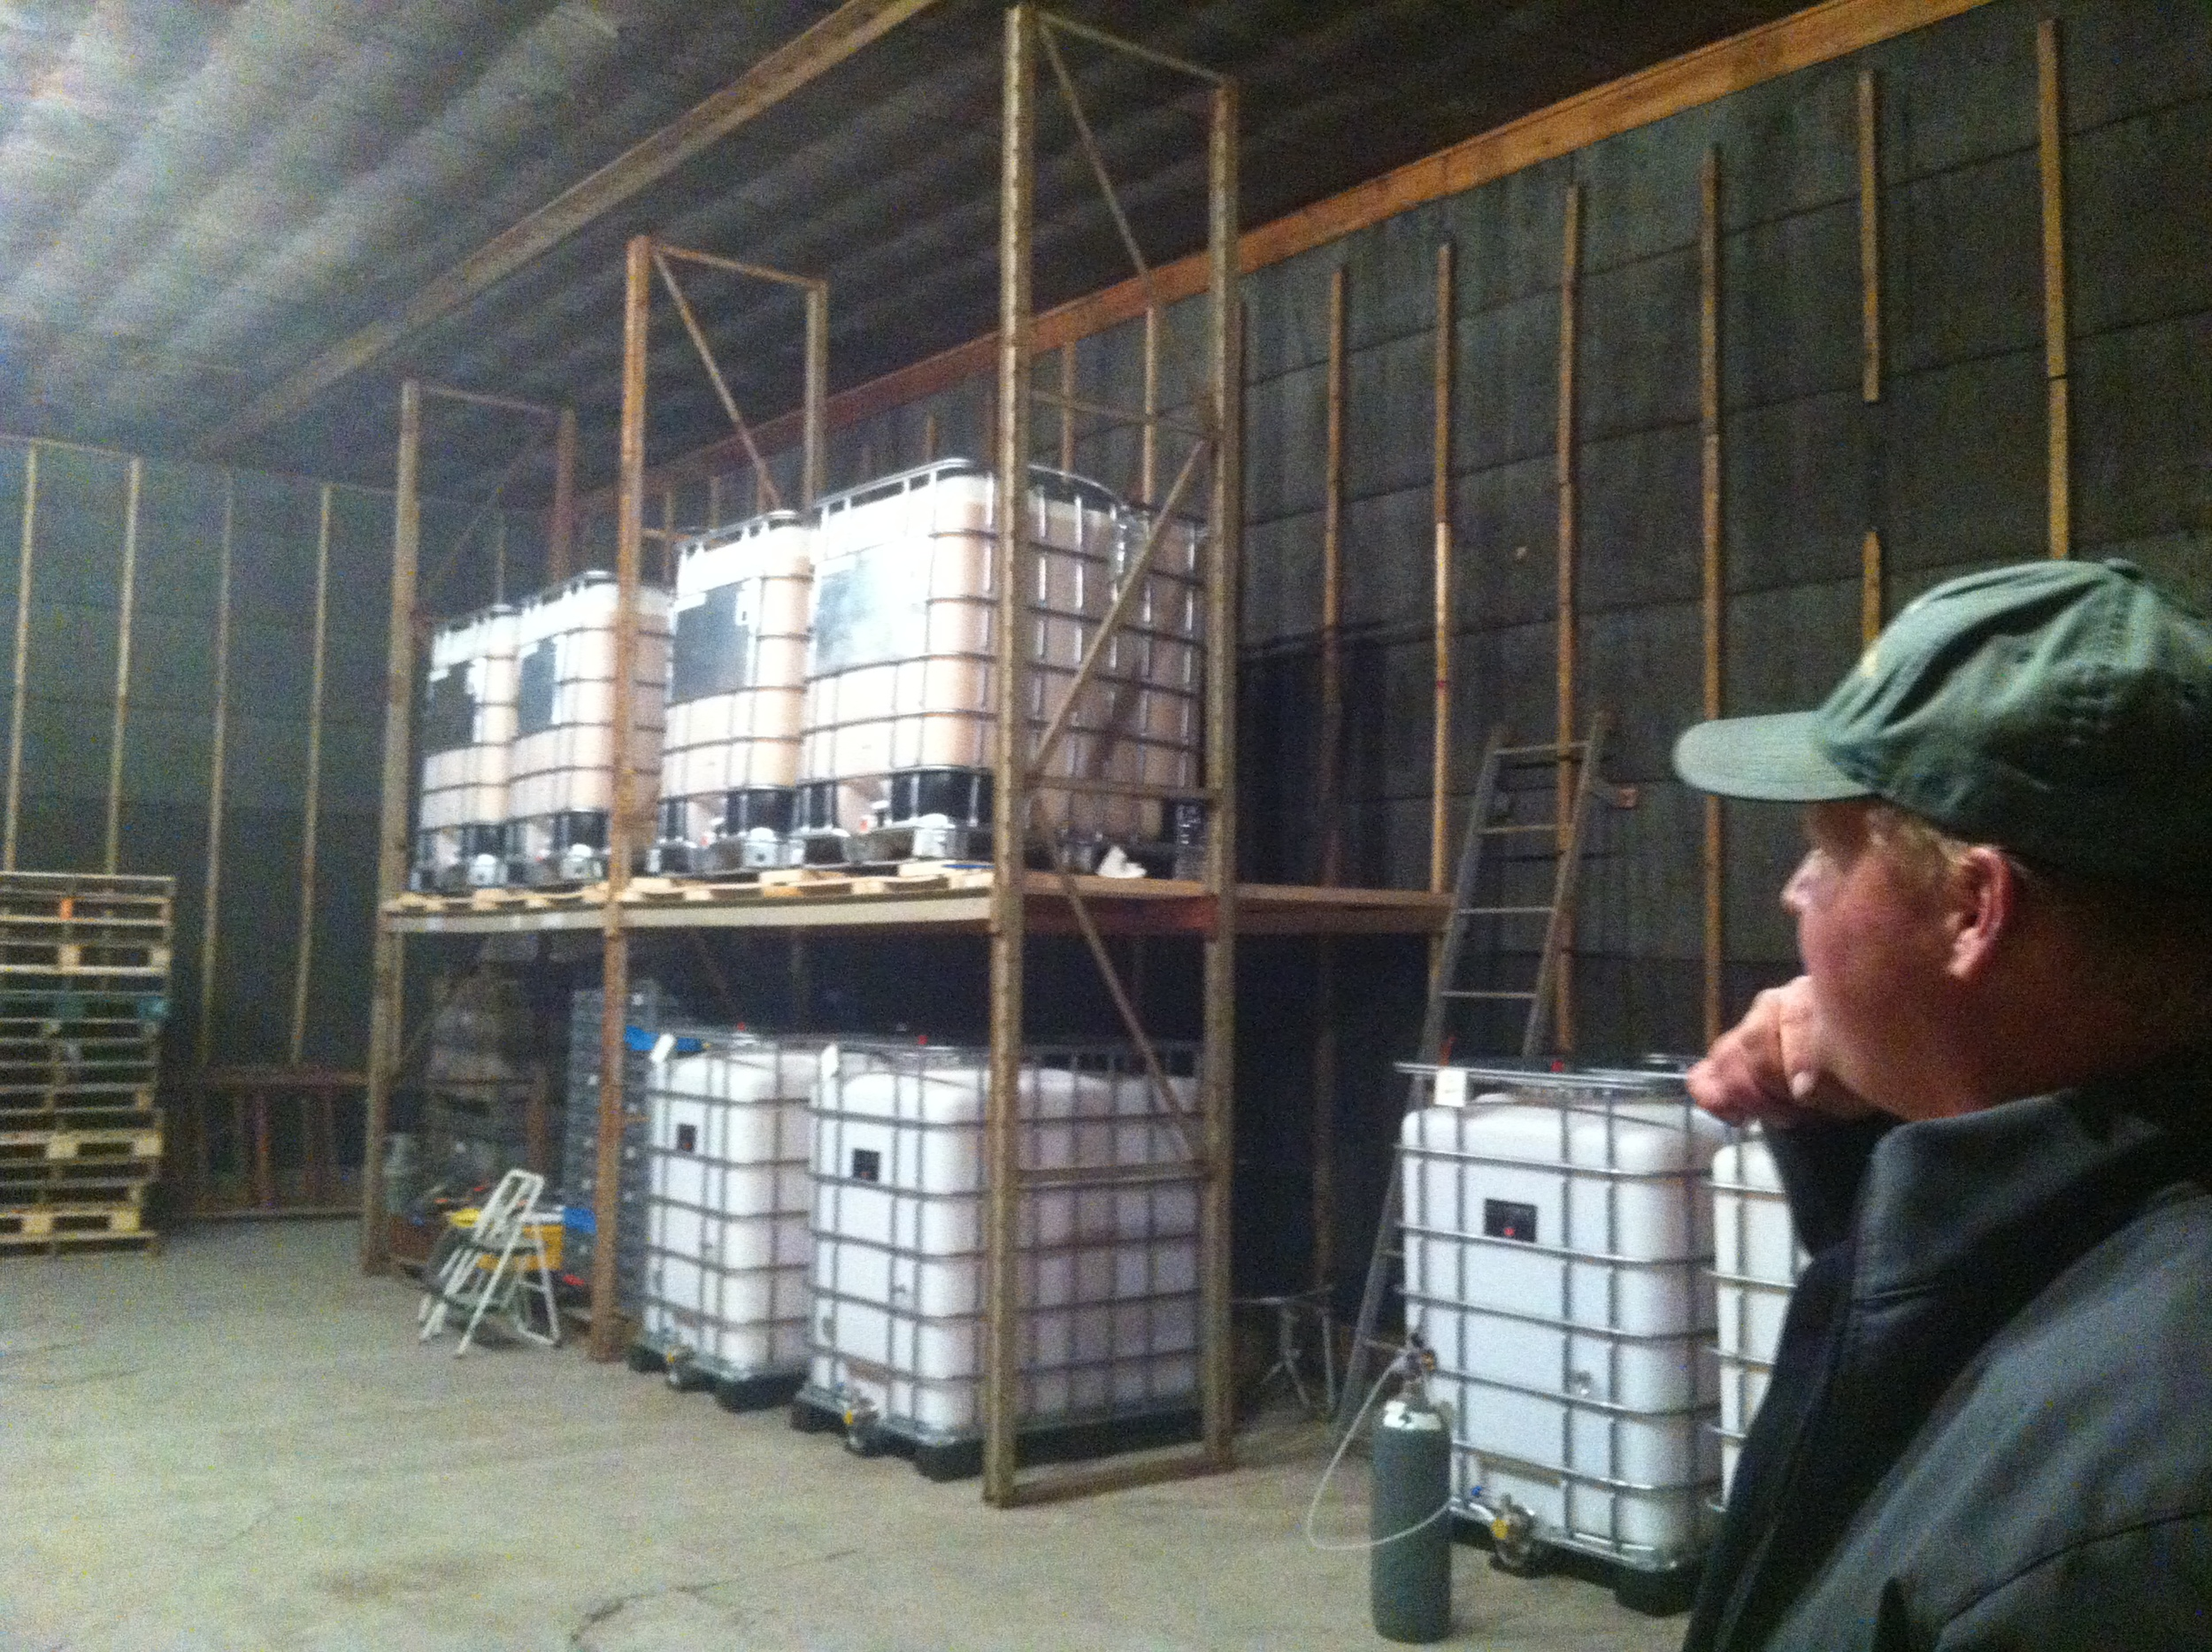 Cider-maker Albert shows us around the warehouse.